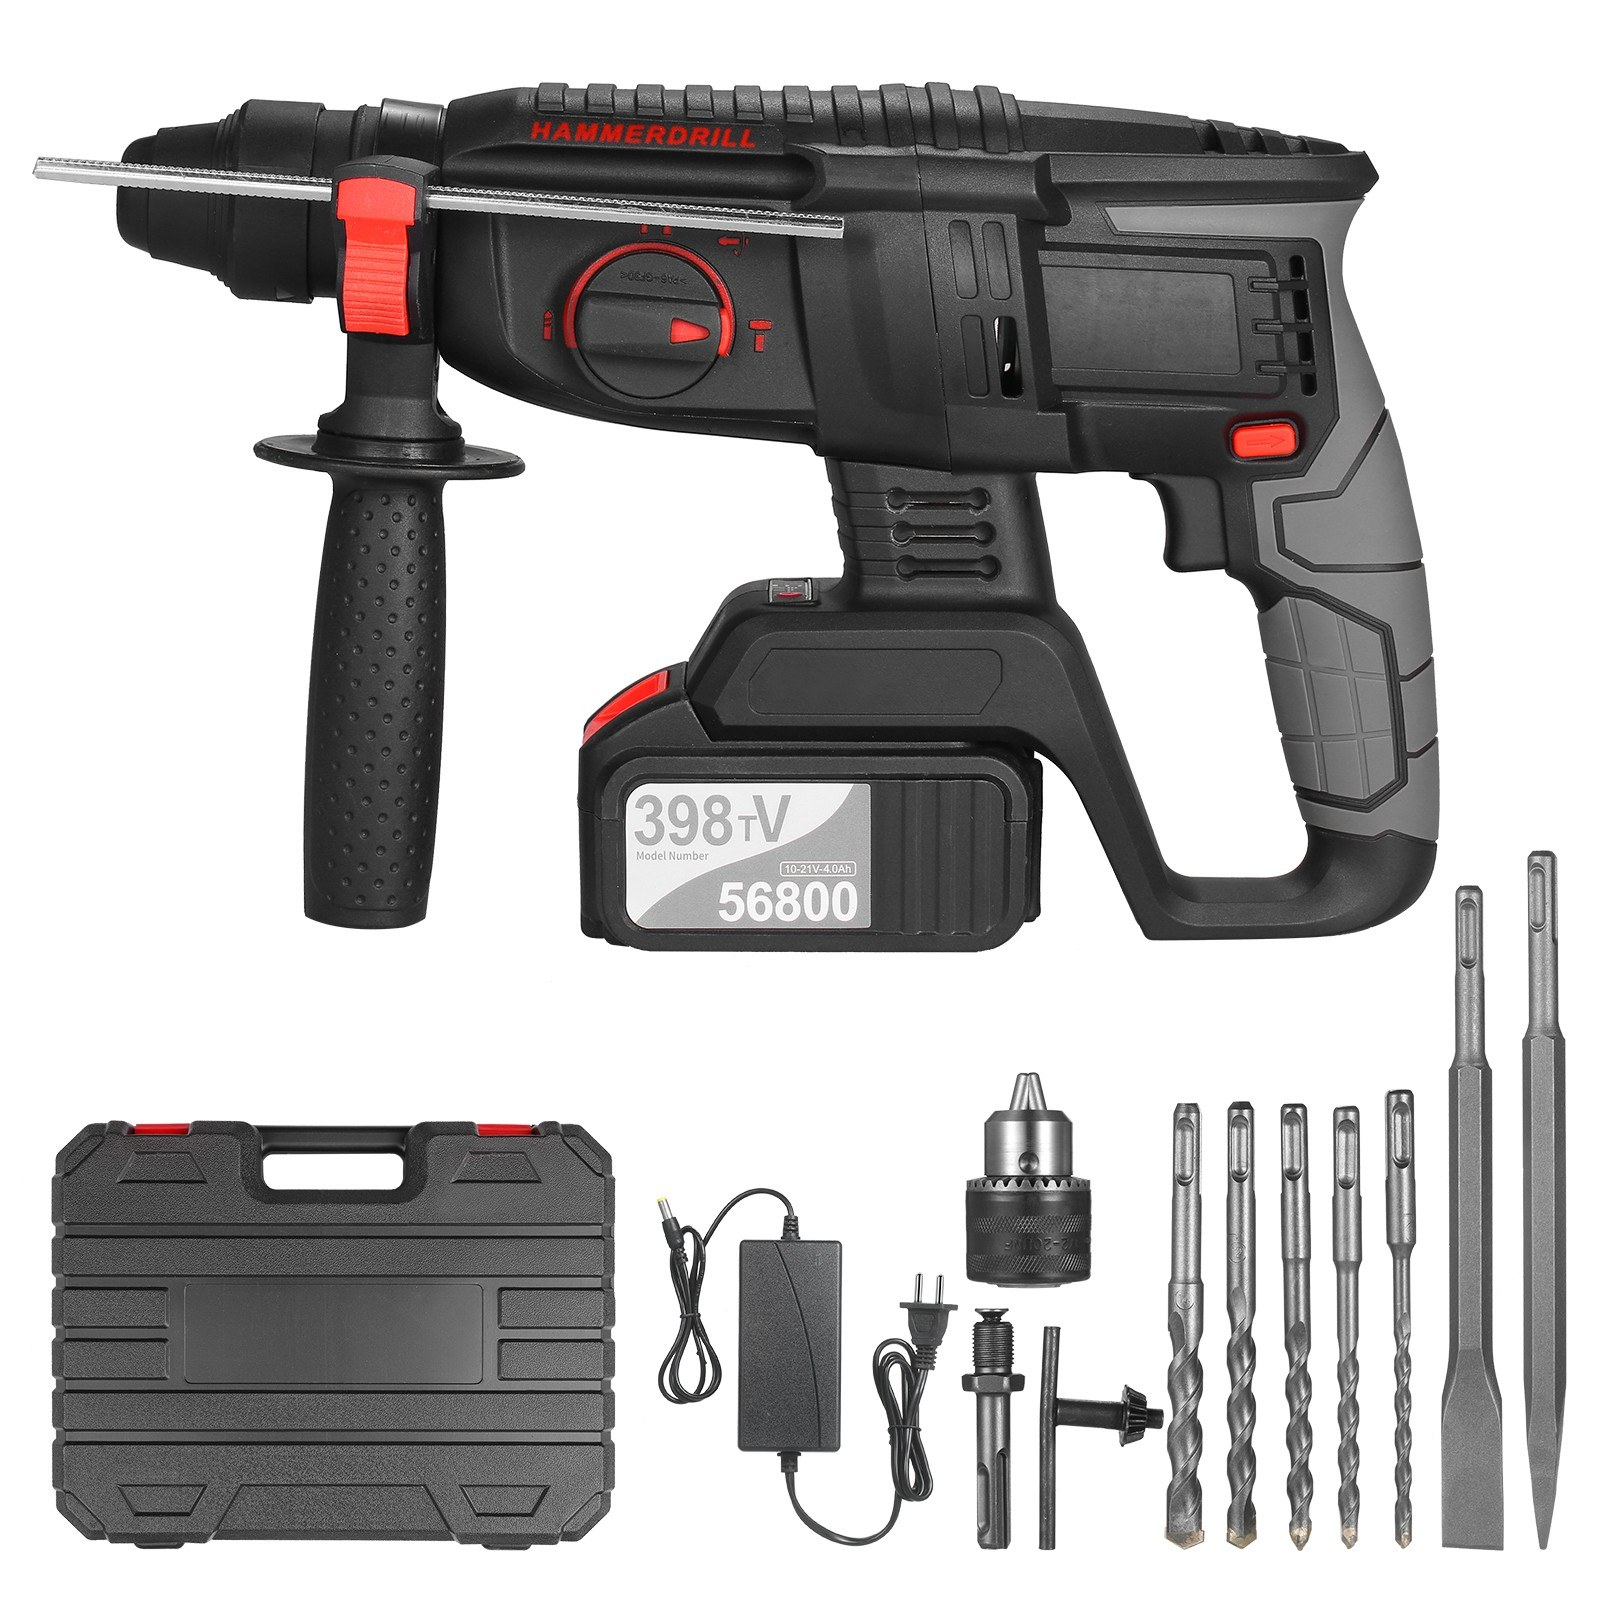 Tomtop - 41% OFF 21V Brushless Heavy Duty 4 Function Rotary Hammer Drill, Free Shipping $134.99